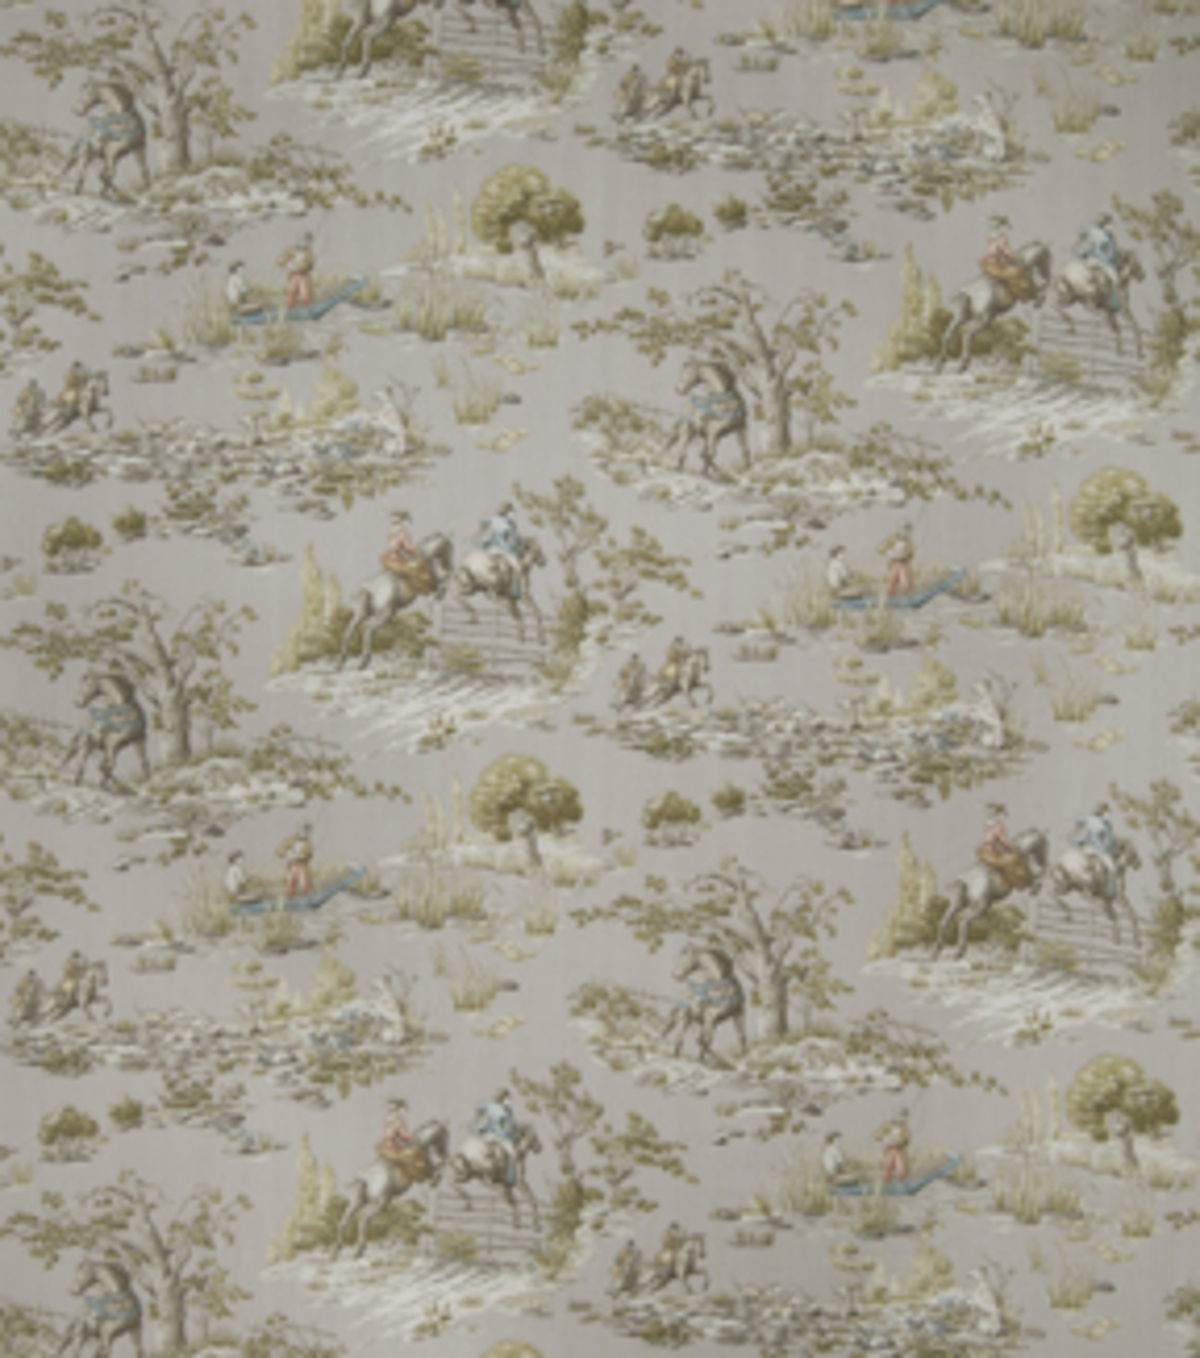 Home Decor 8\u0022x8\u0022 Fabric Swatch-Eaton Square Klondike Linen